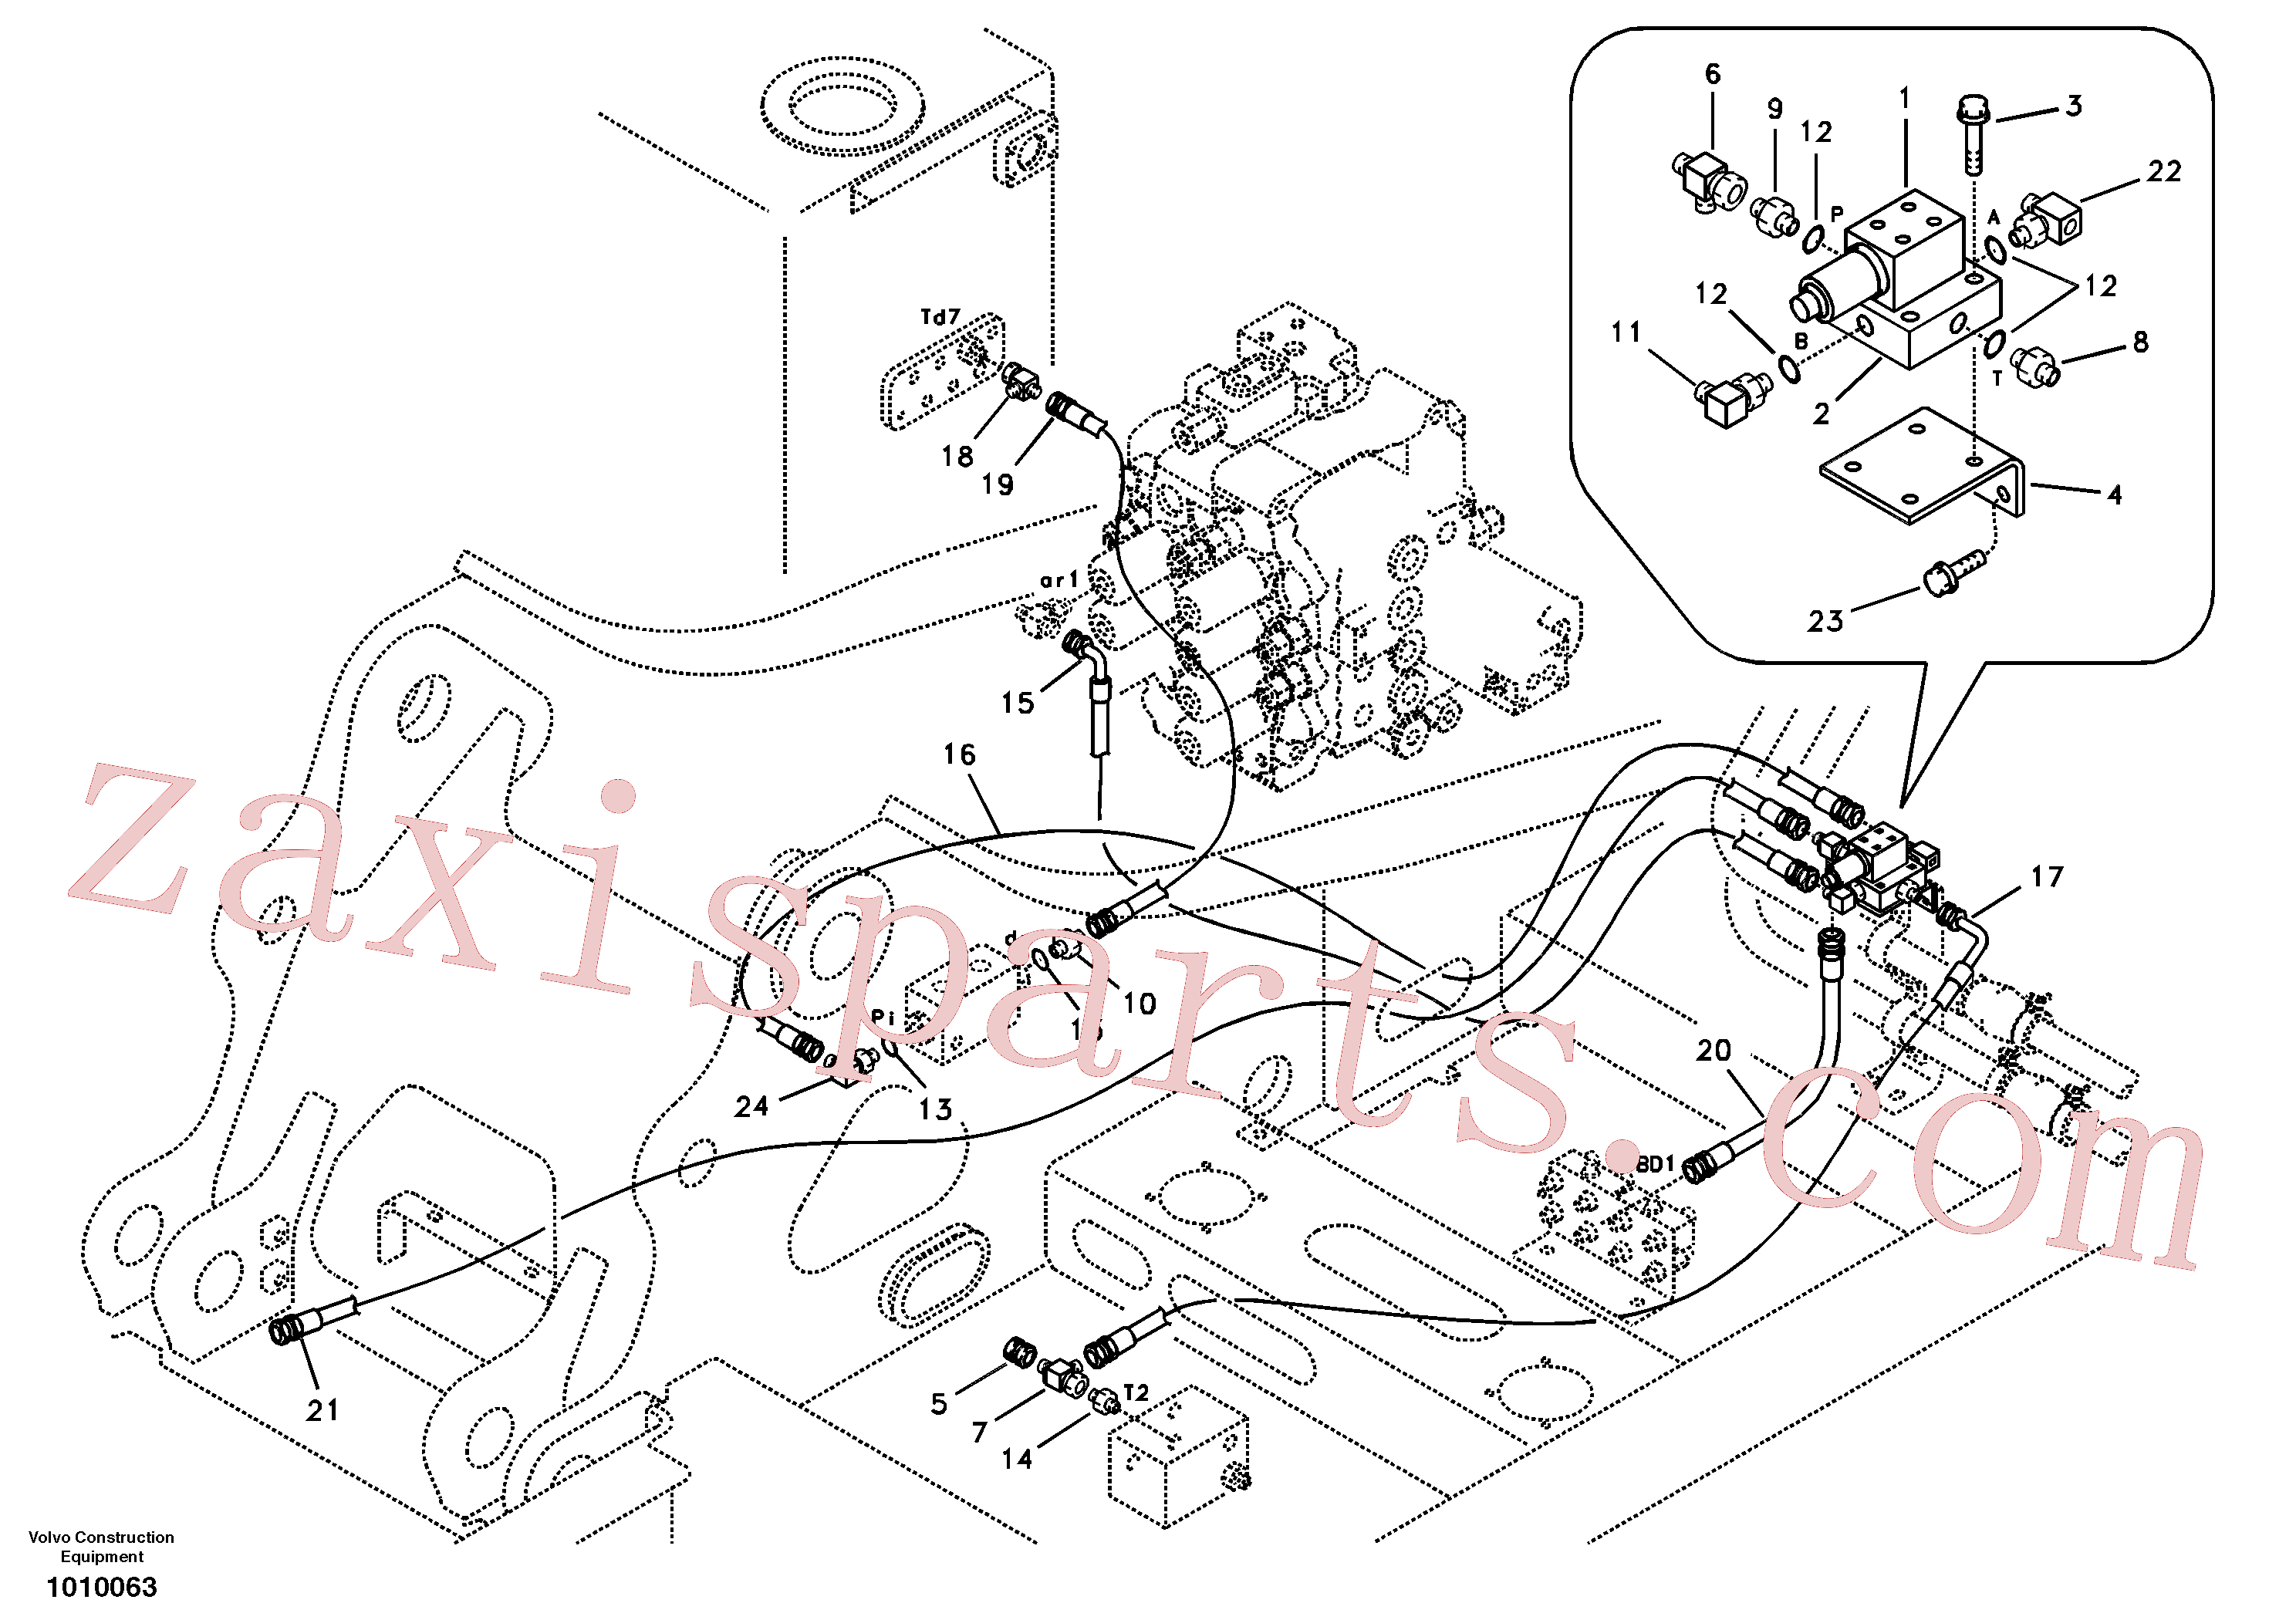 SA9451-02231 for Volvo Servo system, control valve to solenoid valve(1010063 assembly)